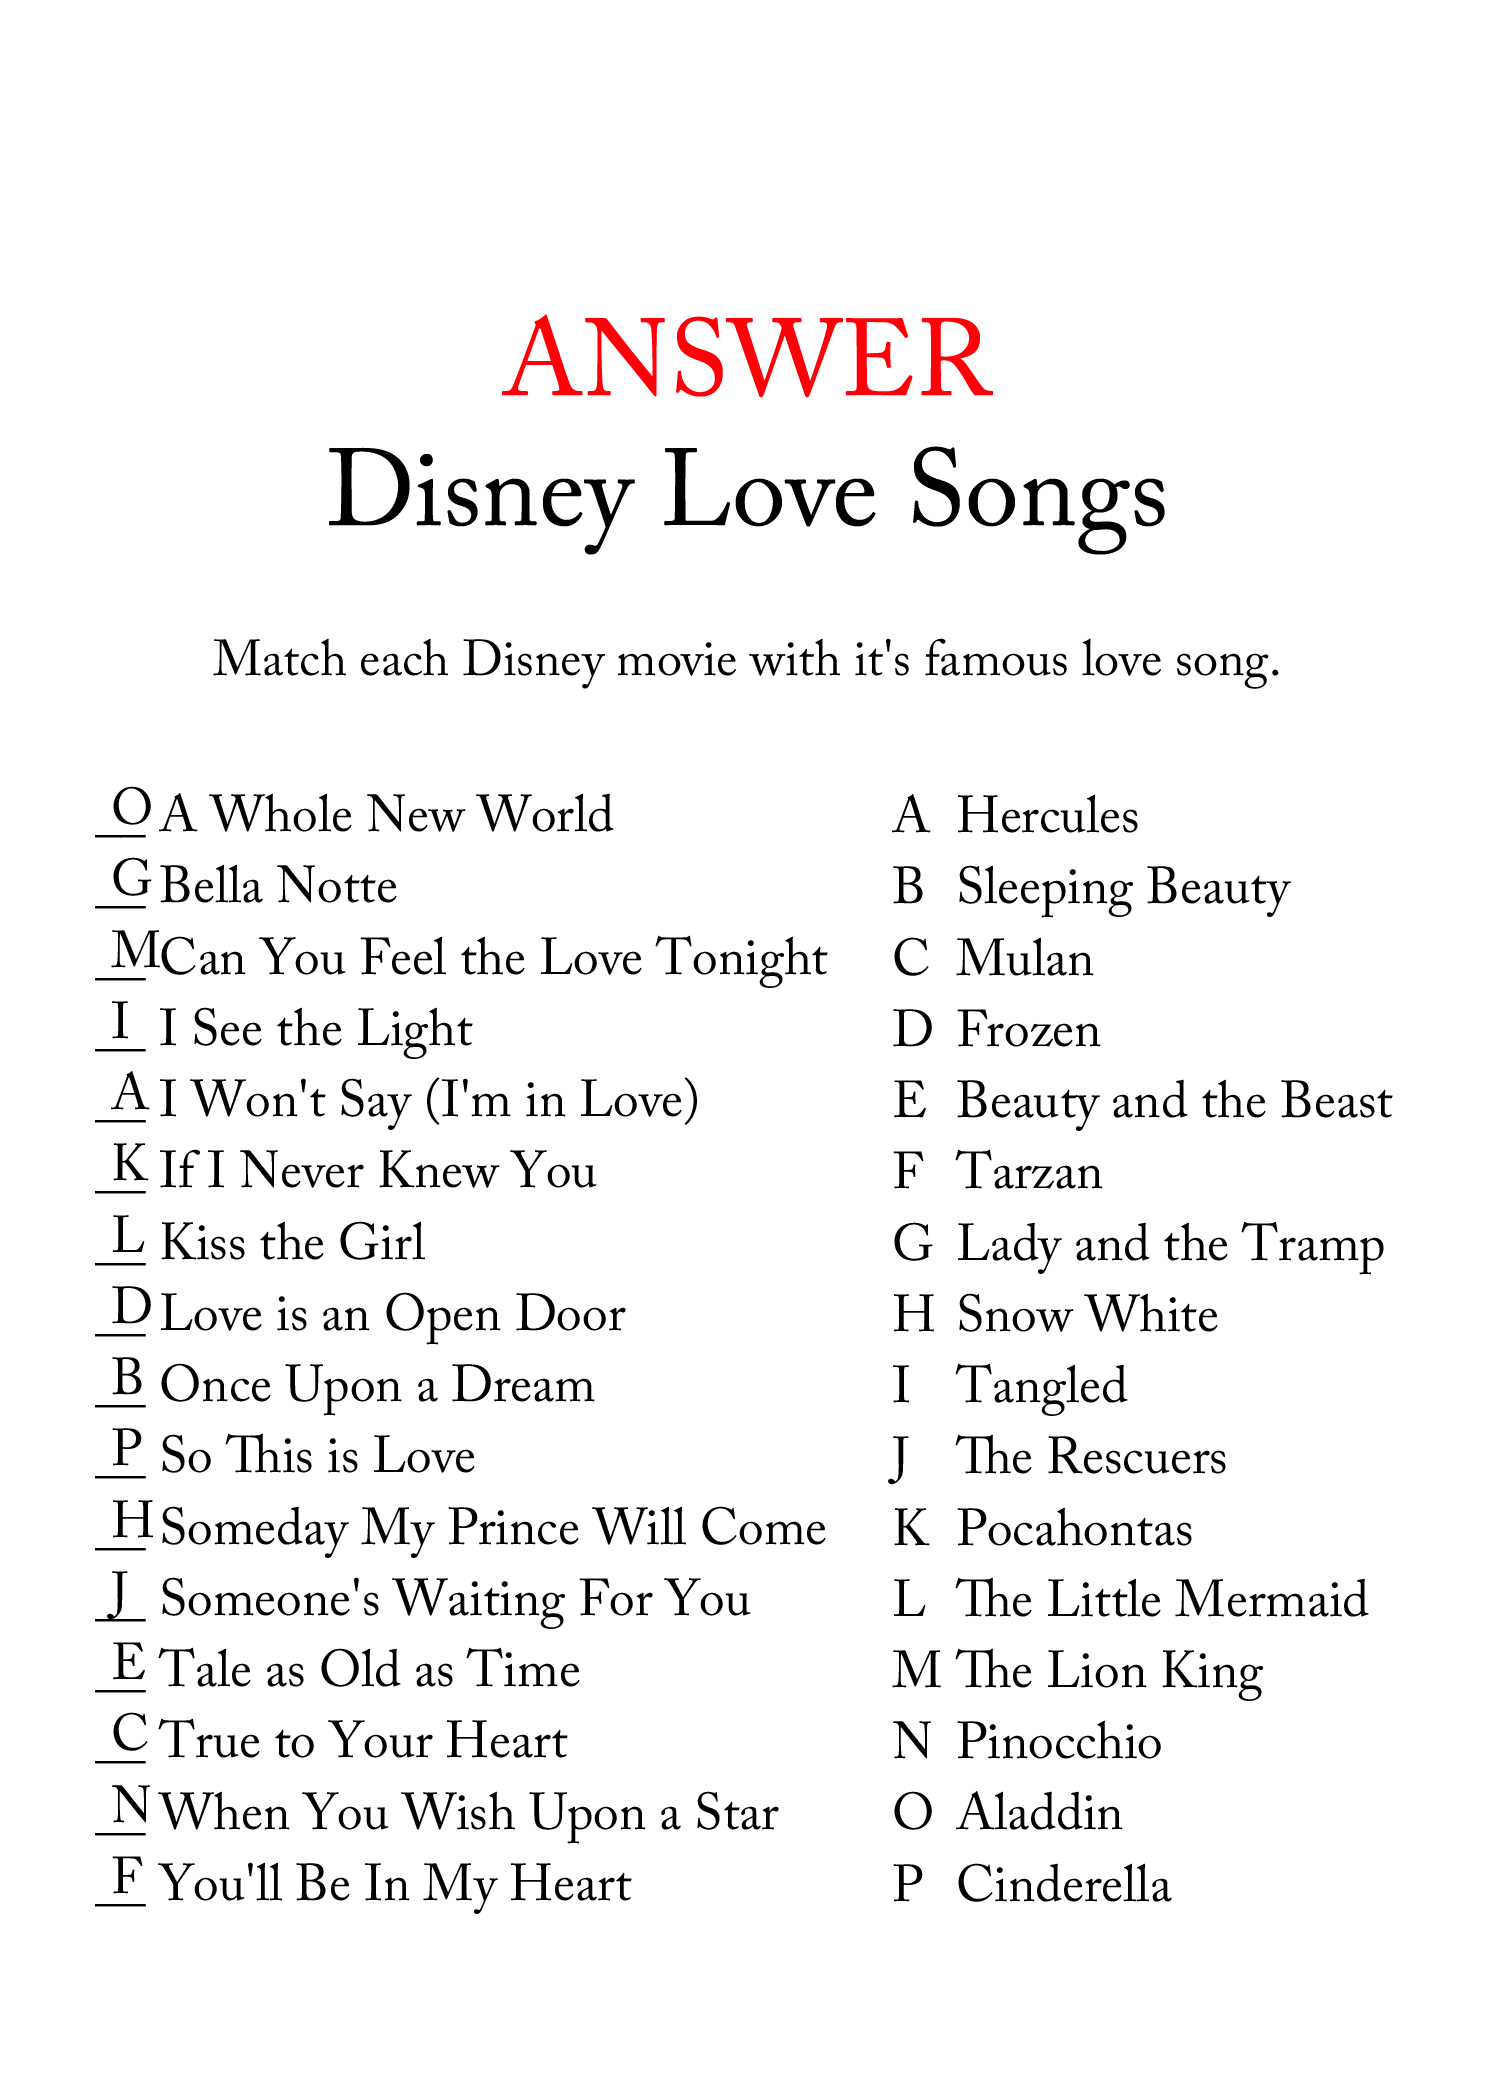 photo about Guess the Disney Movie Song Printable identify BS426-disney-get pleasure from-track-Remedy.jpg - Magical Printable